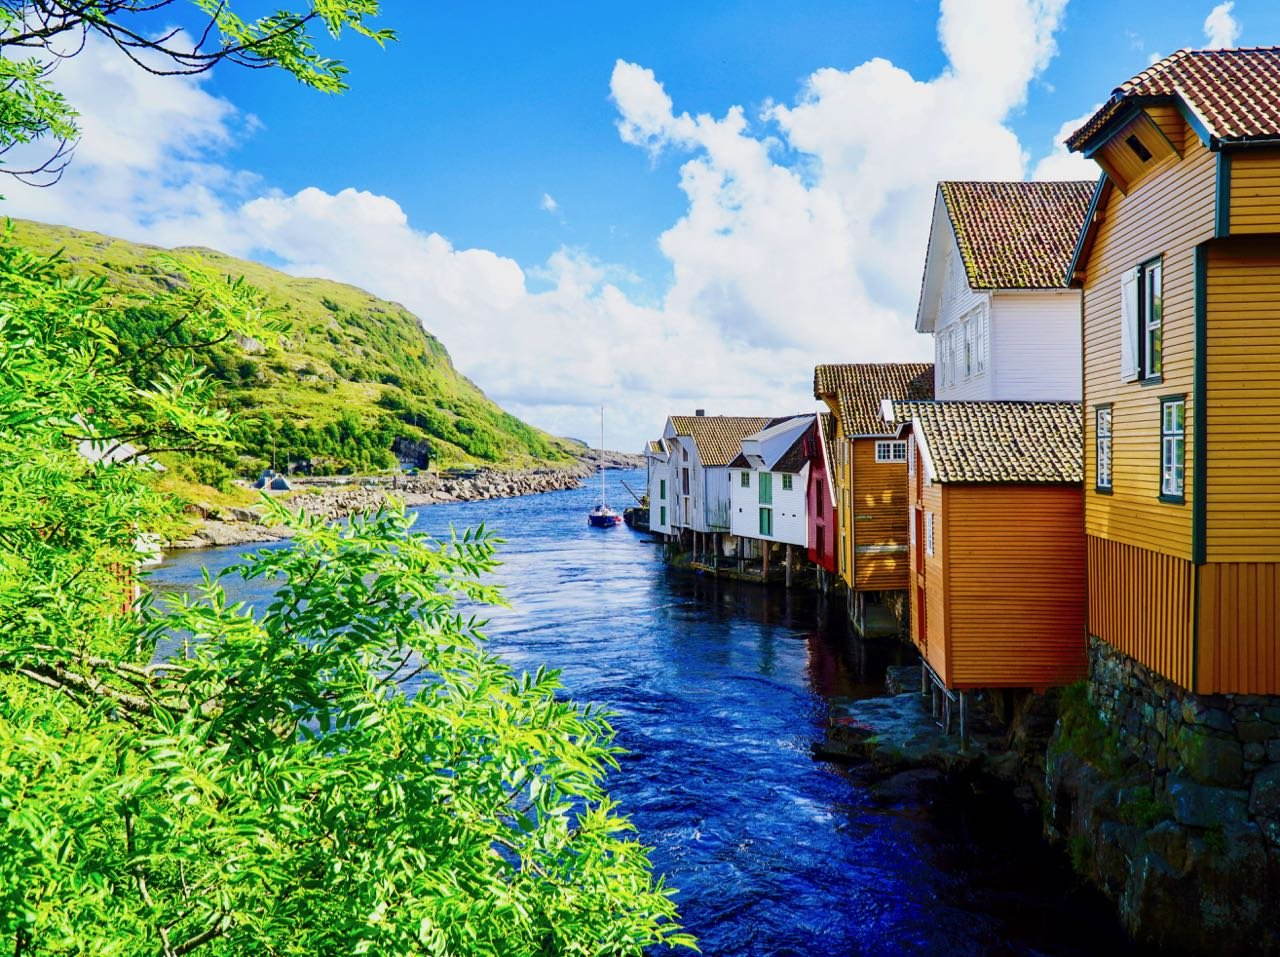 Road trip Norway Sogndalstrand houses town